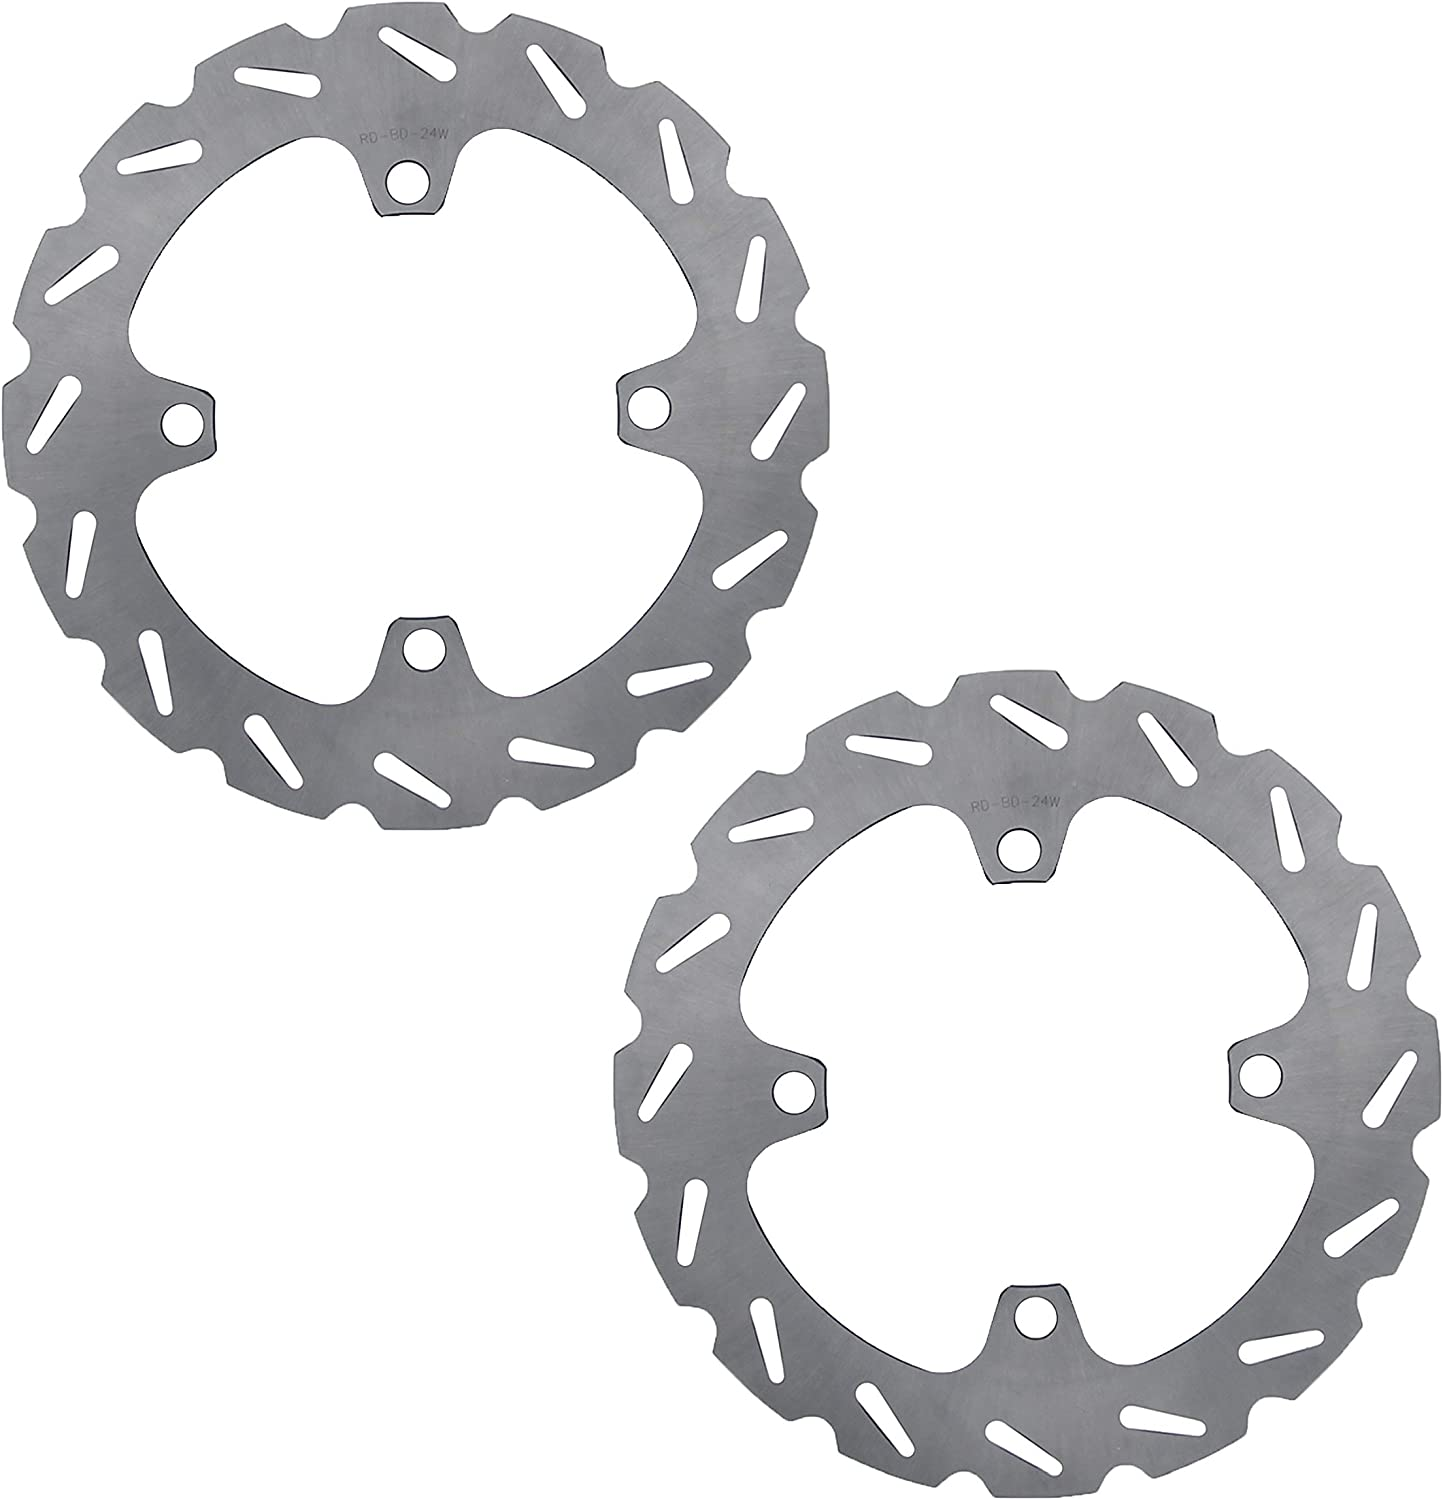 2010-2014 Polaris RZR 4 800 Rotors Brake Outlet sale feature Discs Rear Weekly update RipTide